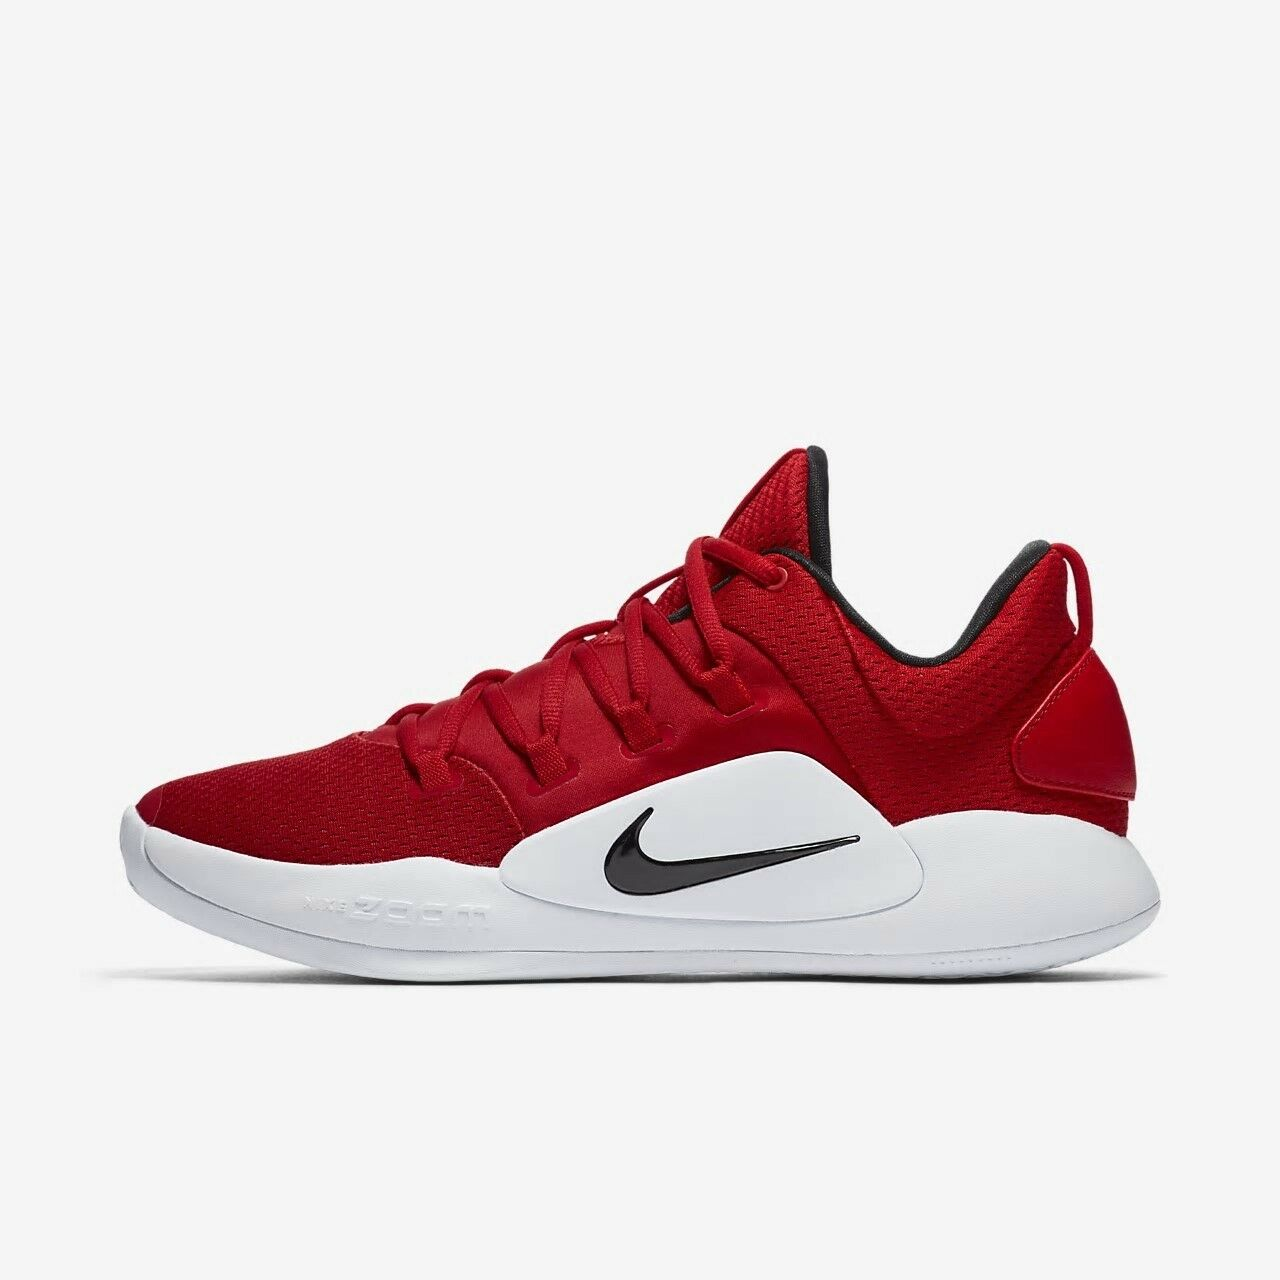 2018 Nike HYPERDUNK X TB Low Basketball - Red - AR0463-600 M Sz 4.5 W Sz 6